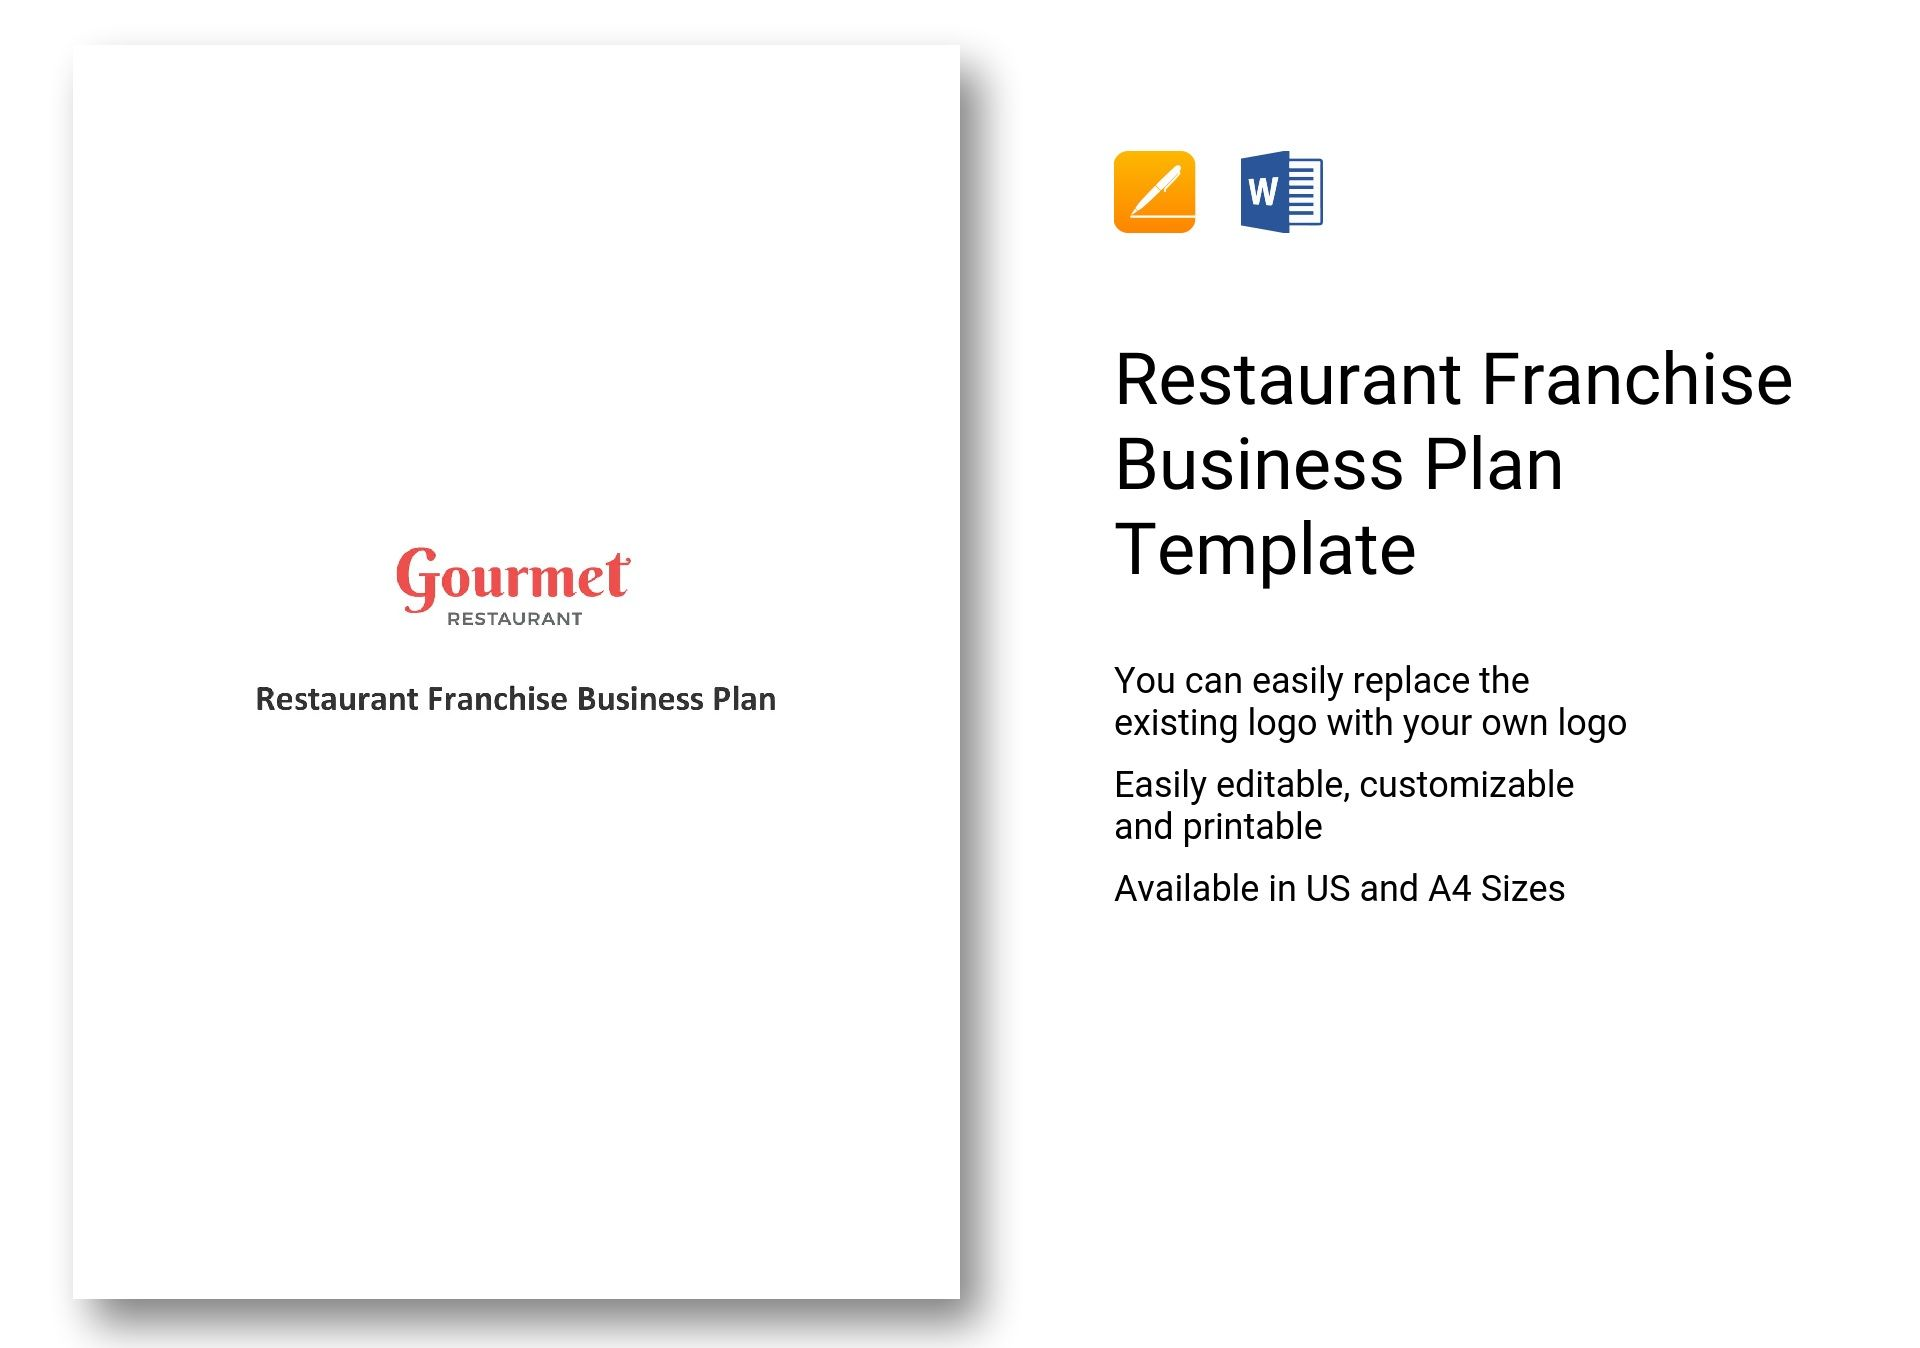 Restaurant franchise business plan template in word apple pages cheaphphosting Gallery